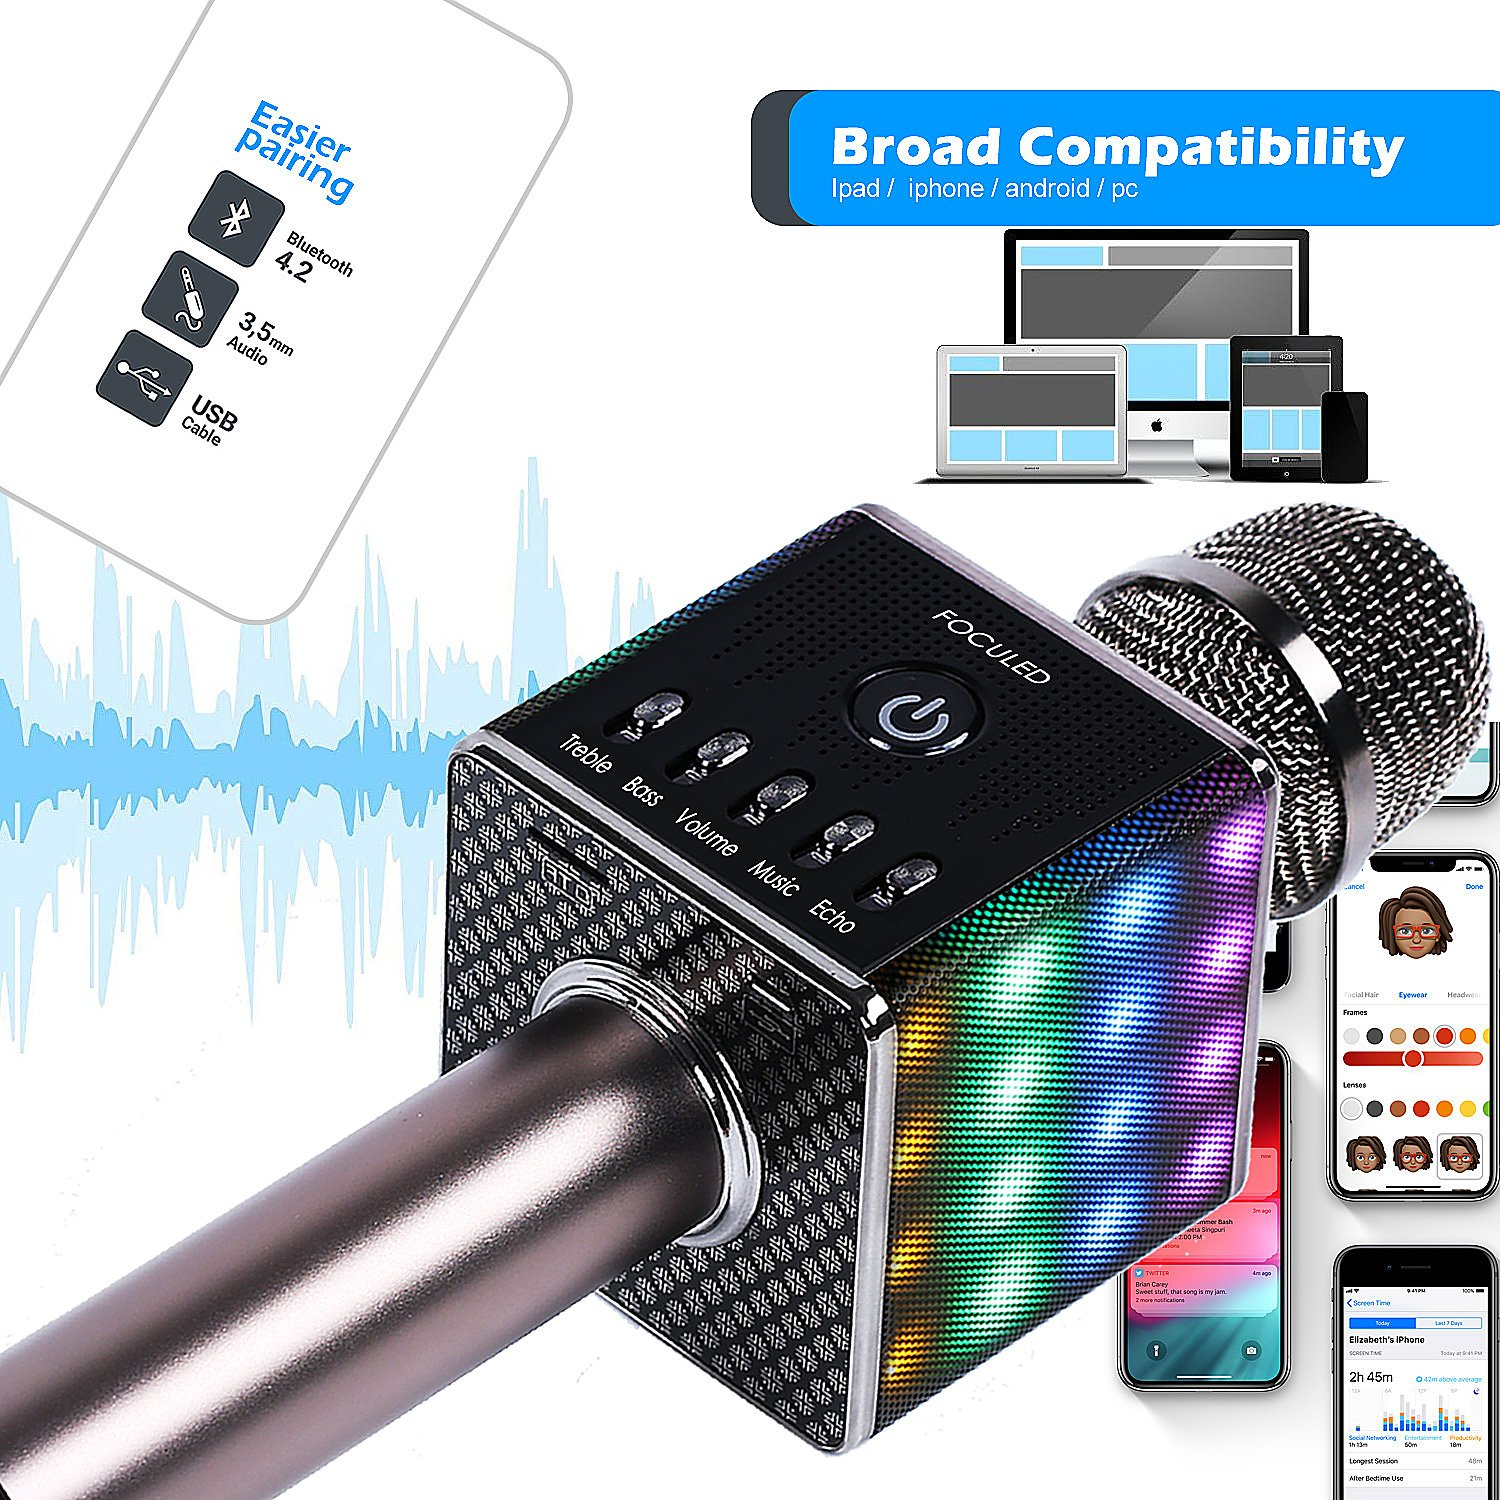 Portable Wireless Bluetooth Karaoke Microphone with LED lights, Built-in HIFI Dual-Speaker 10W and 2600mAH battery capacity, Handheld karaoke Mic Speaker Machine for Home KTV Birthday Party by FOCULED (Image #6)